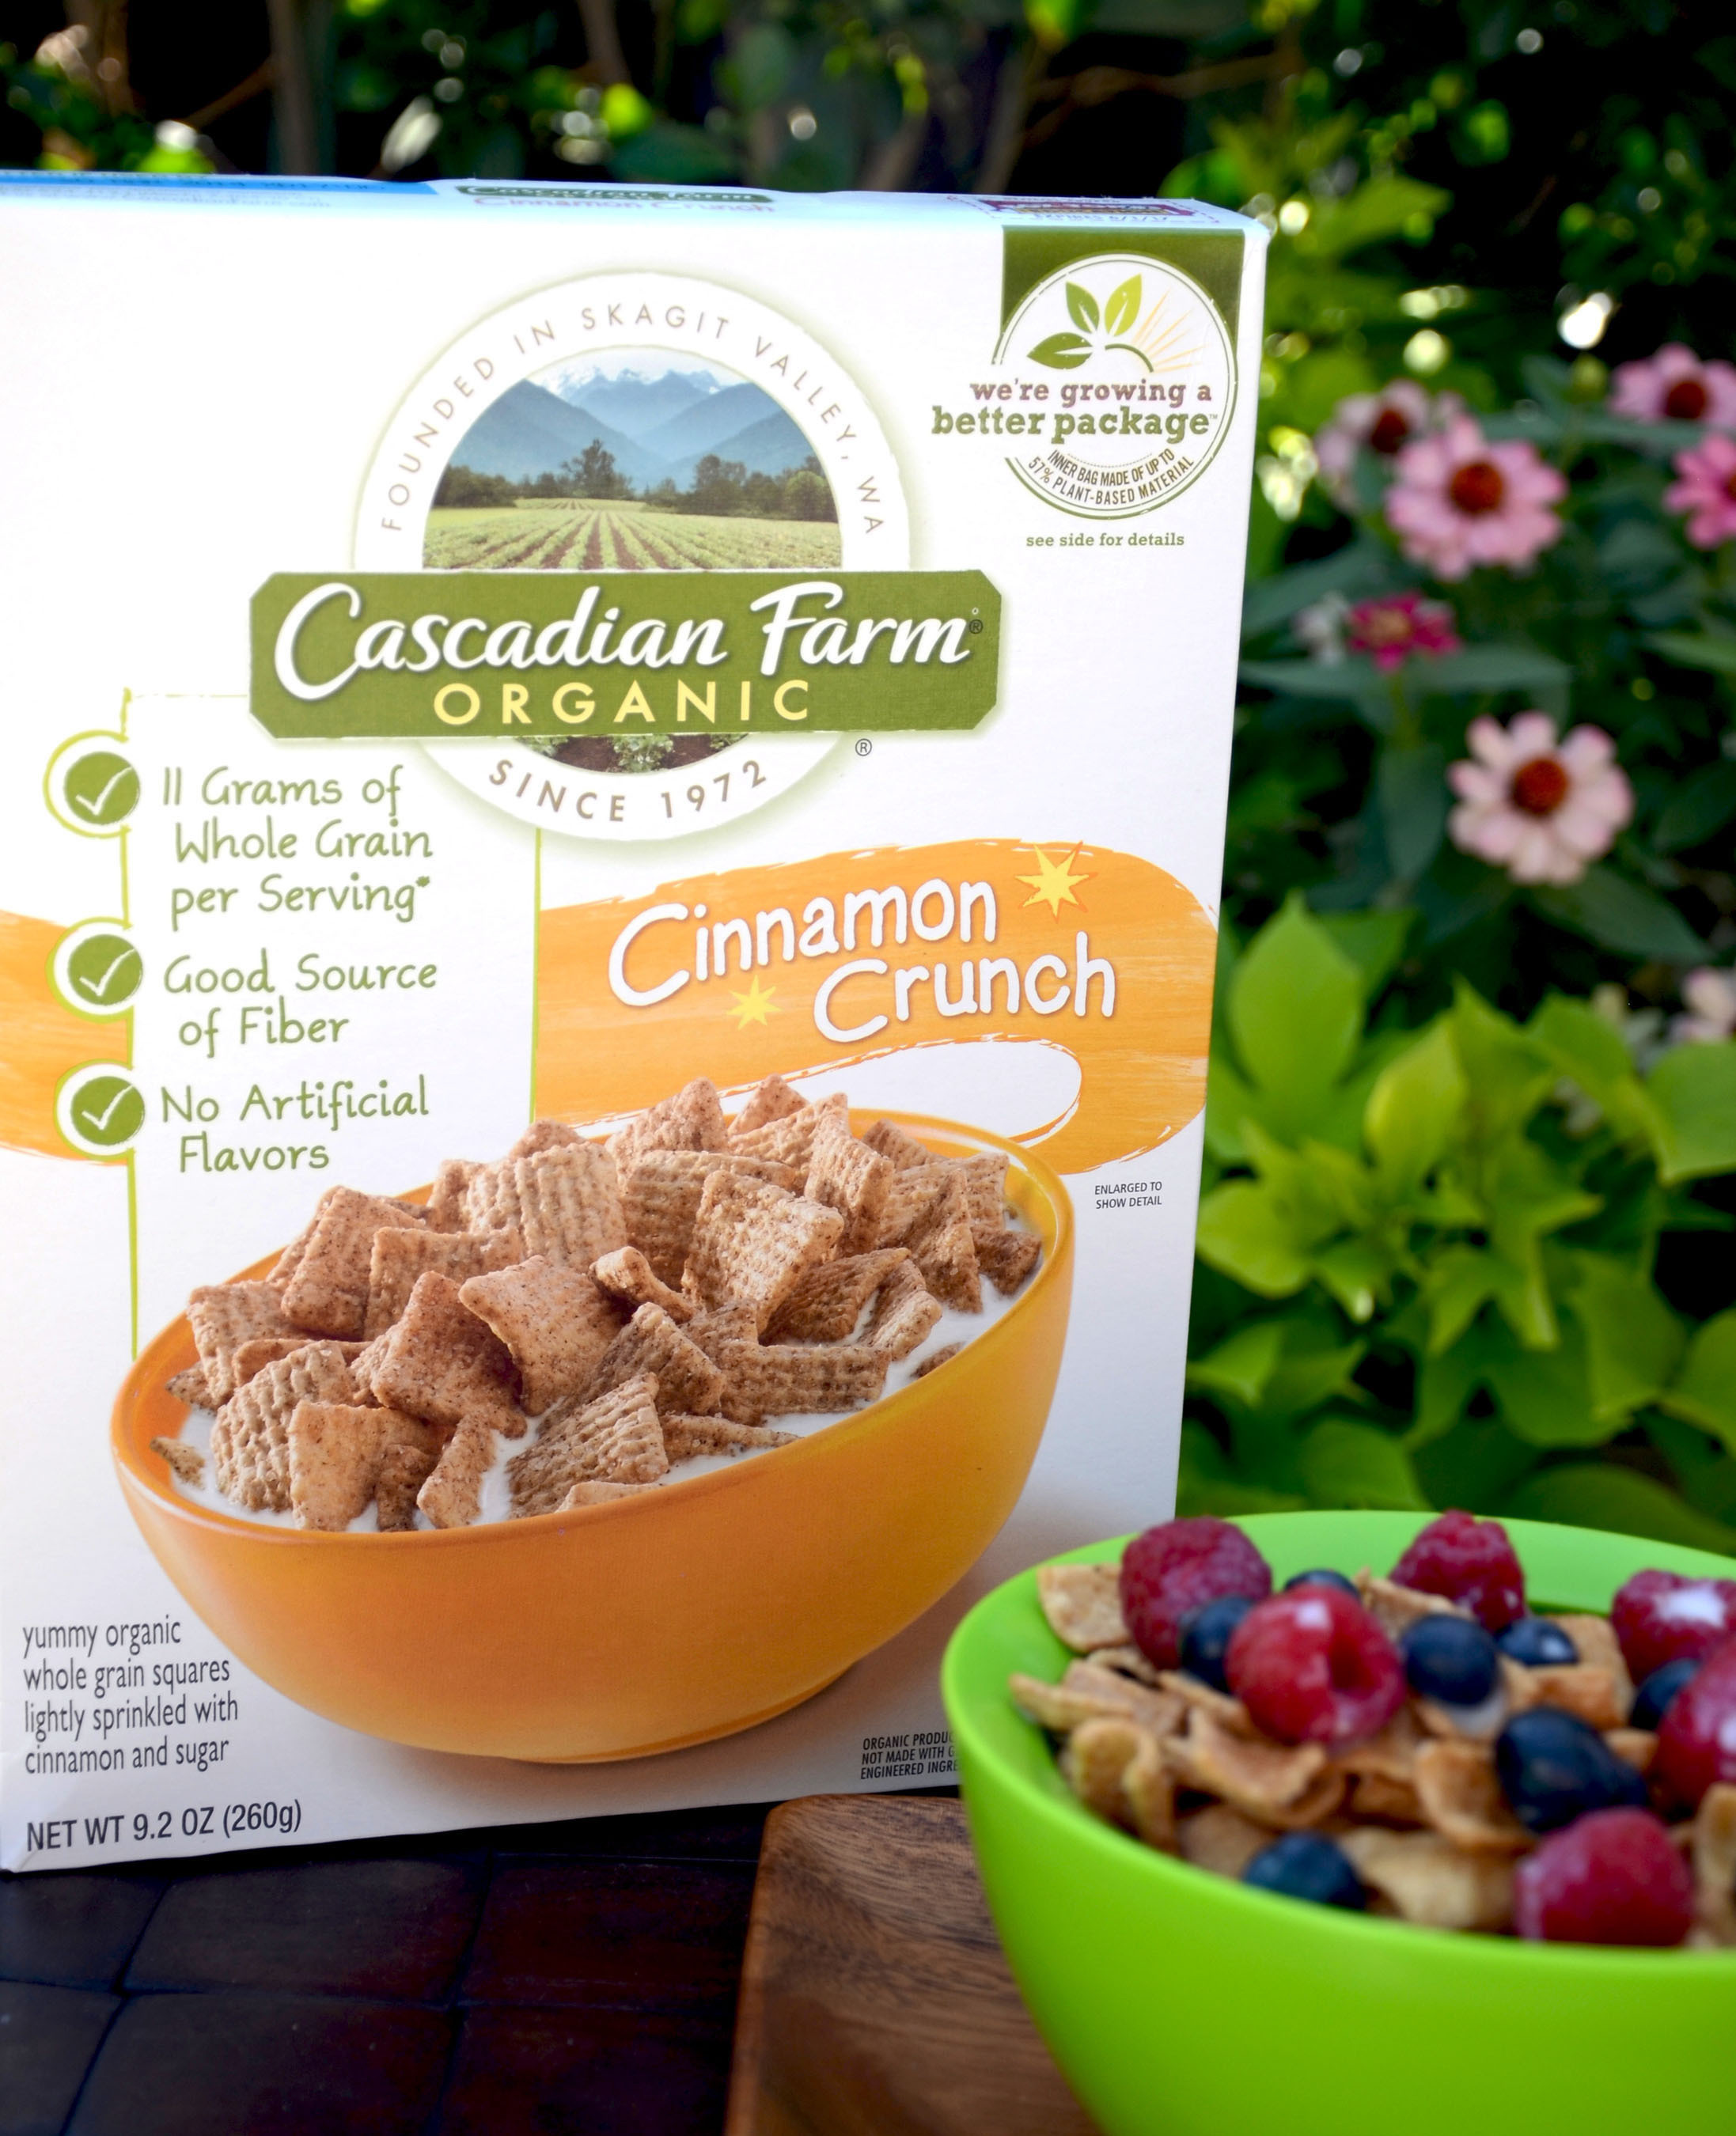 Cascadian Farm Goes Green with the First-Ever Cereal Box Liner Made from Renewable Plant Sources.   (PRNewsFoto/Cascadian Farm)